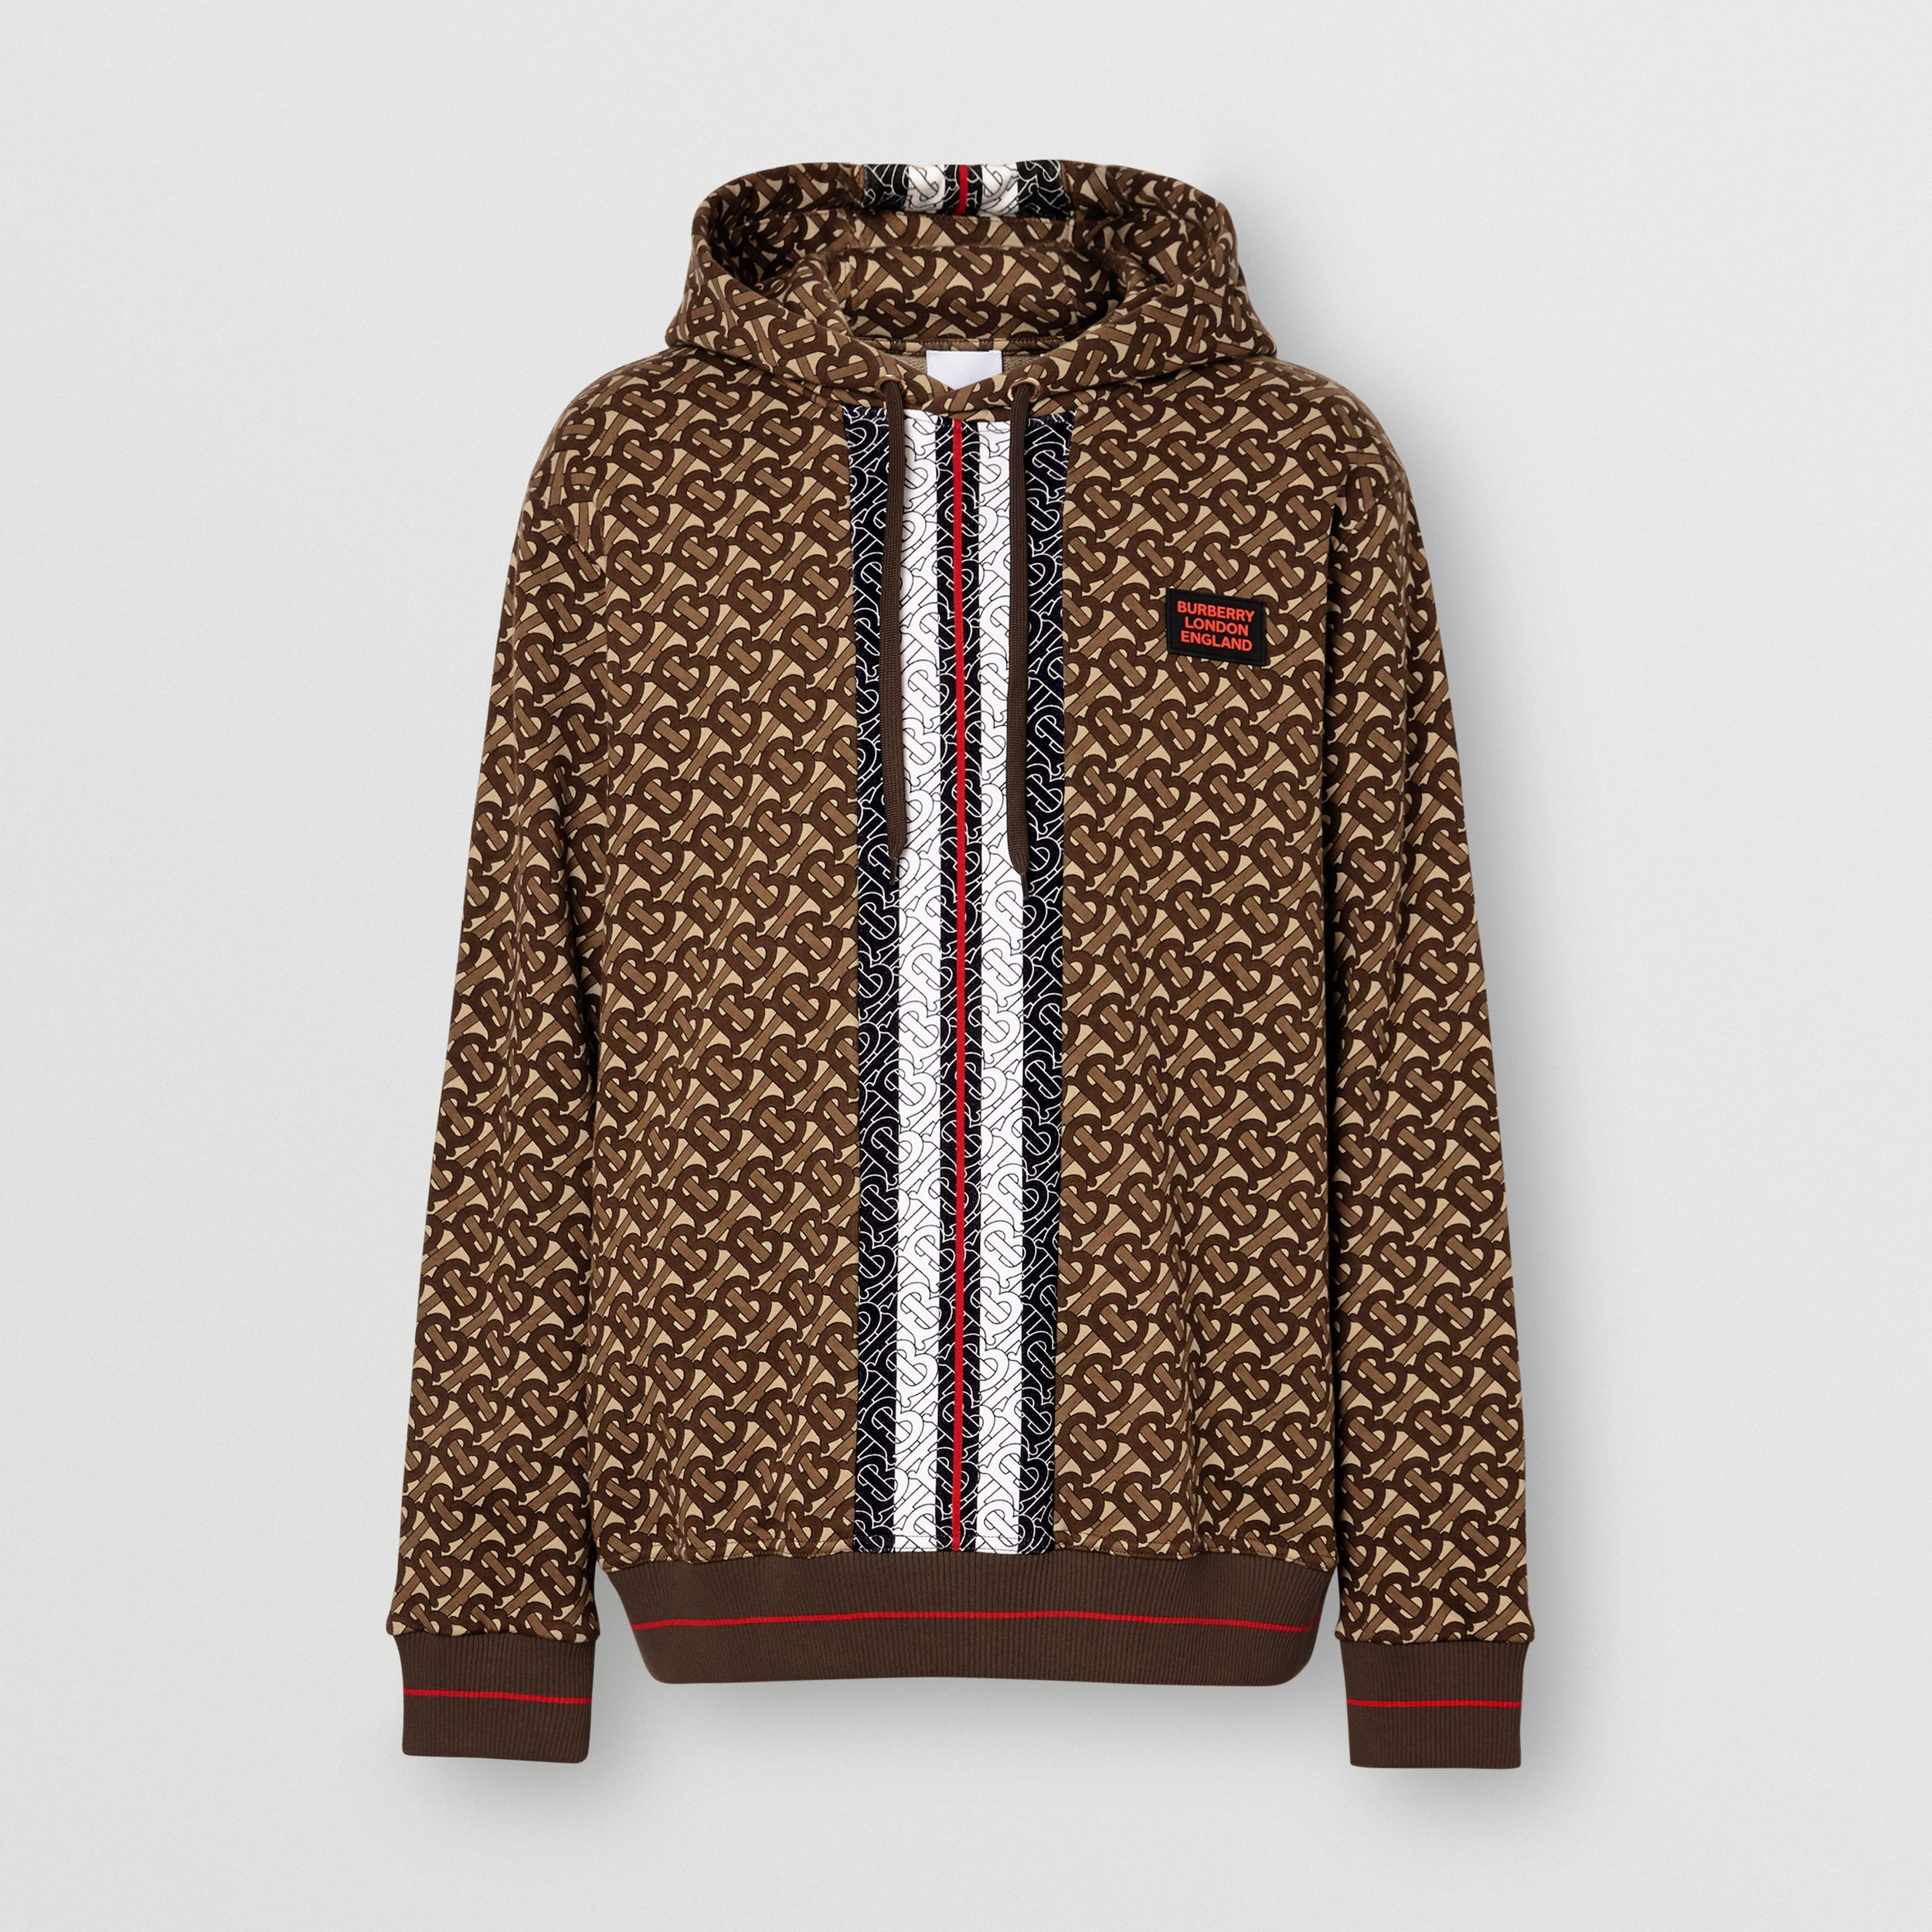 Monogram Stripe Print Cotton Hoodie in Bridle Brown - Men | Burberry - 4